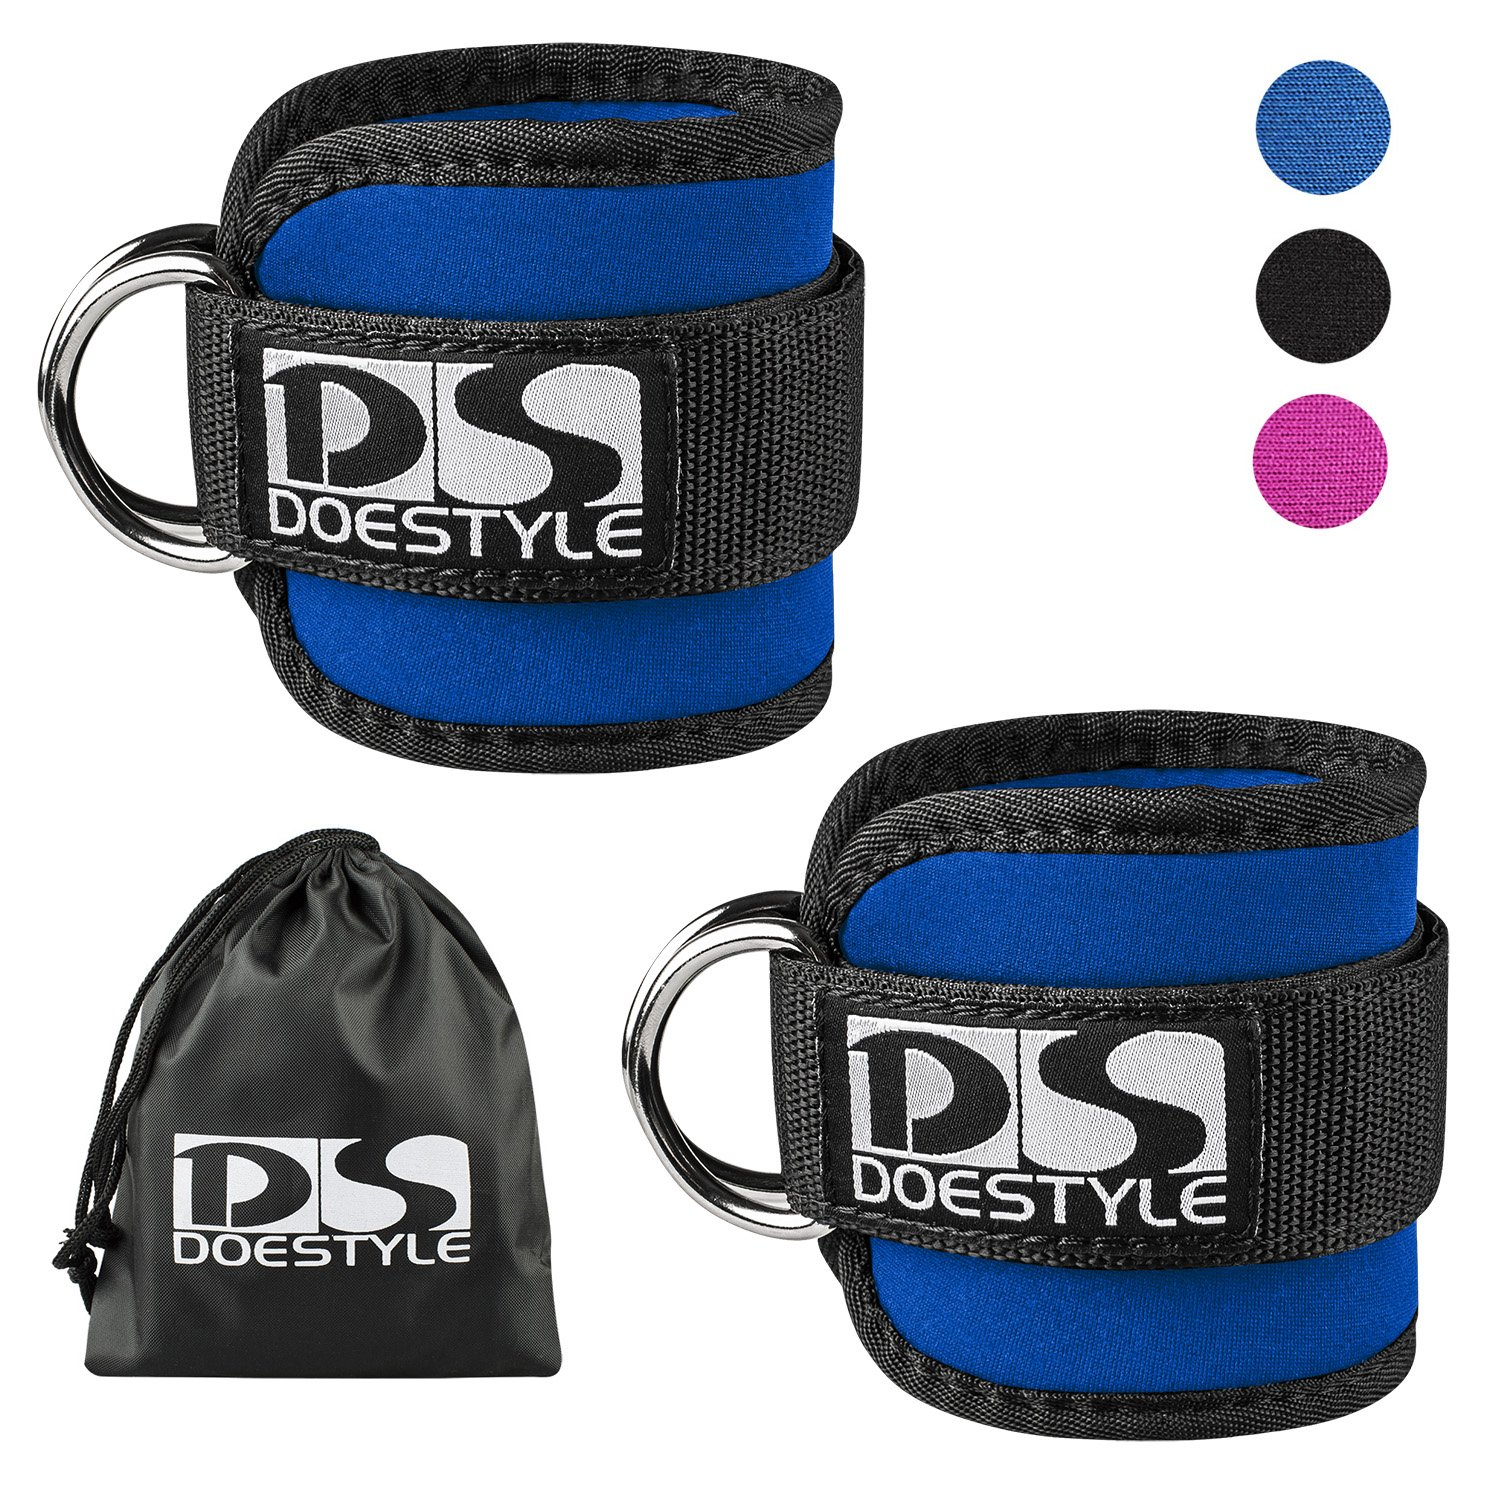 Double D-Ring Ankle Straps by Doestyle, Adjustable Fit Ankle Cuff Strap for GYM Cable Machines Workouts with Durable Cuffs for Ab, Leg & Butt Exercises Men & Women Fitness (Dual D-ring Plus, Blue)